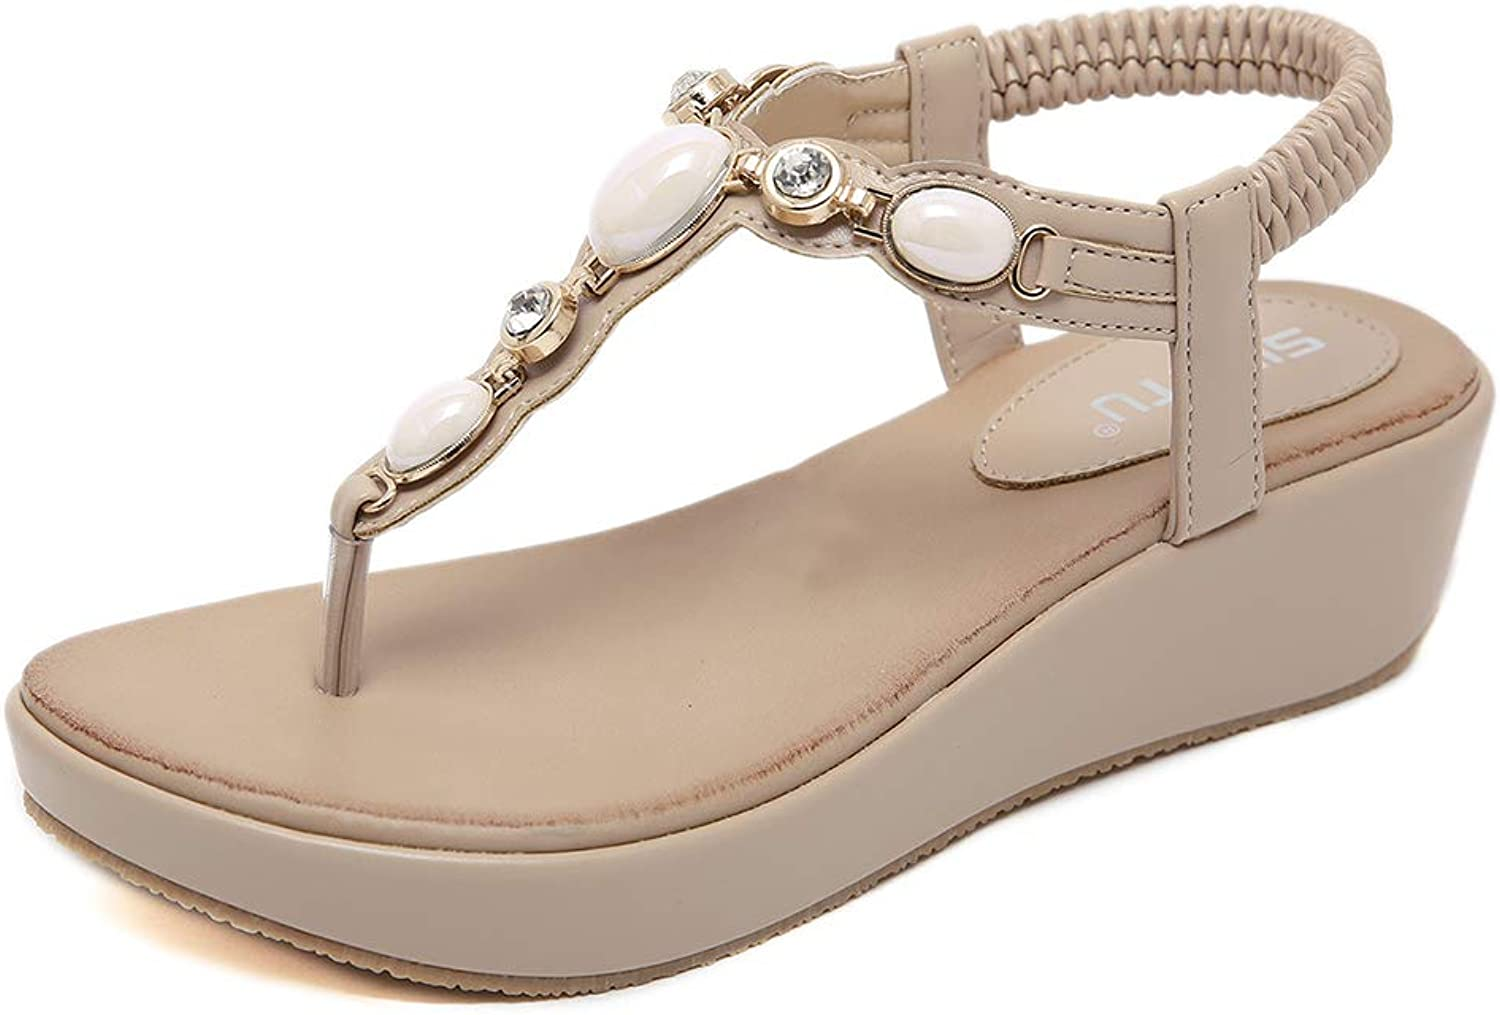 Tuoup Women's Leather Stylish Jeweled Bling Beaded Thong Beach Sandals